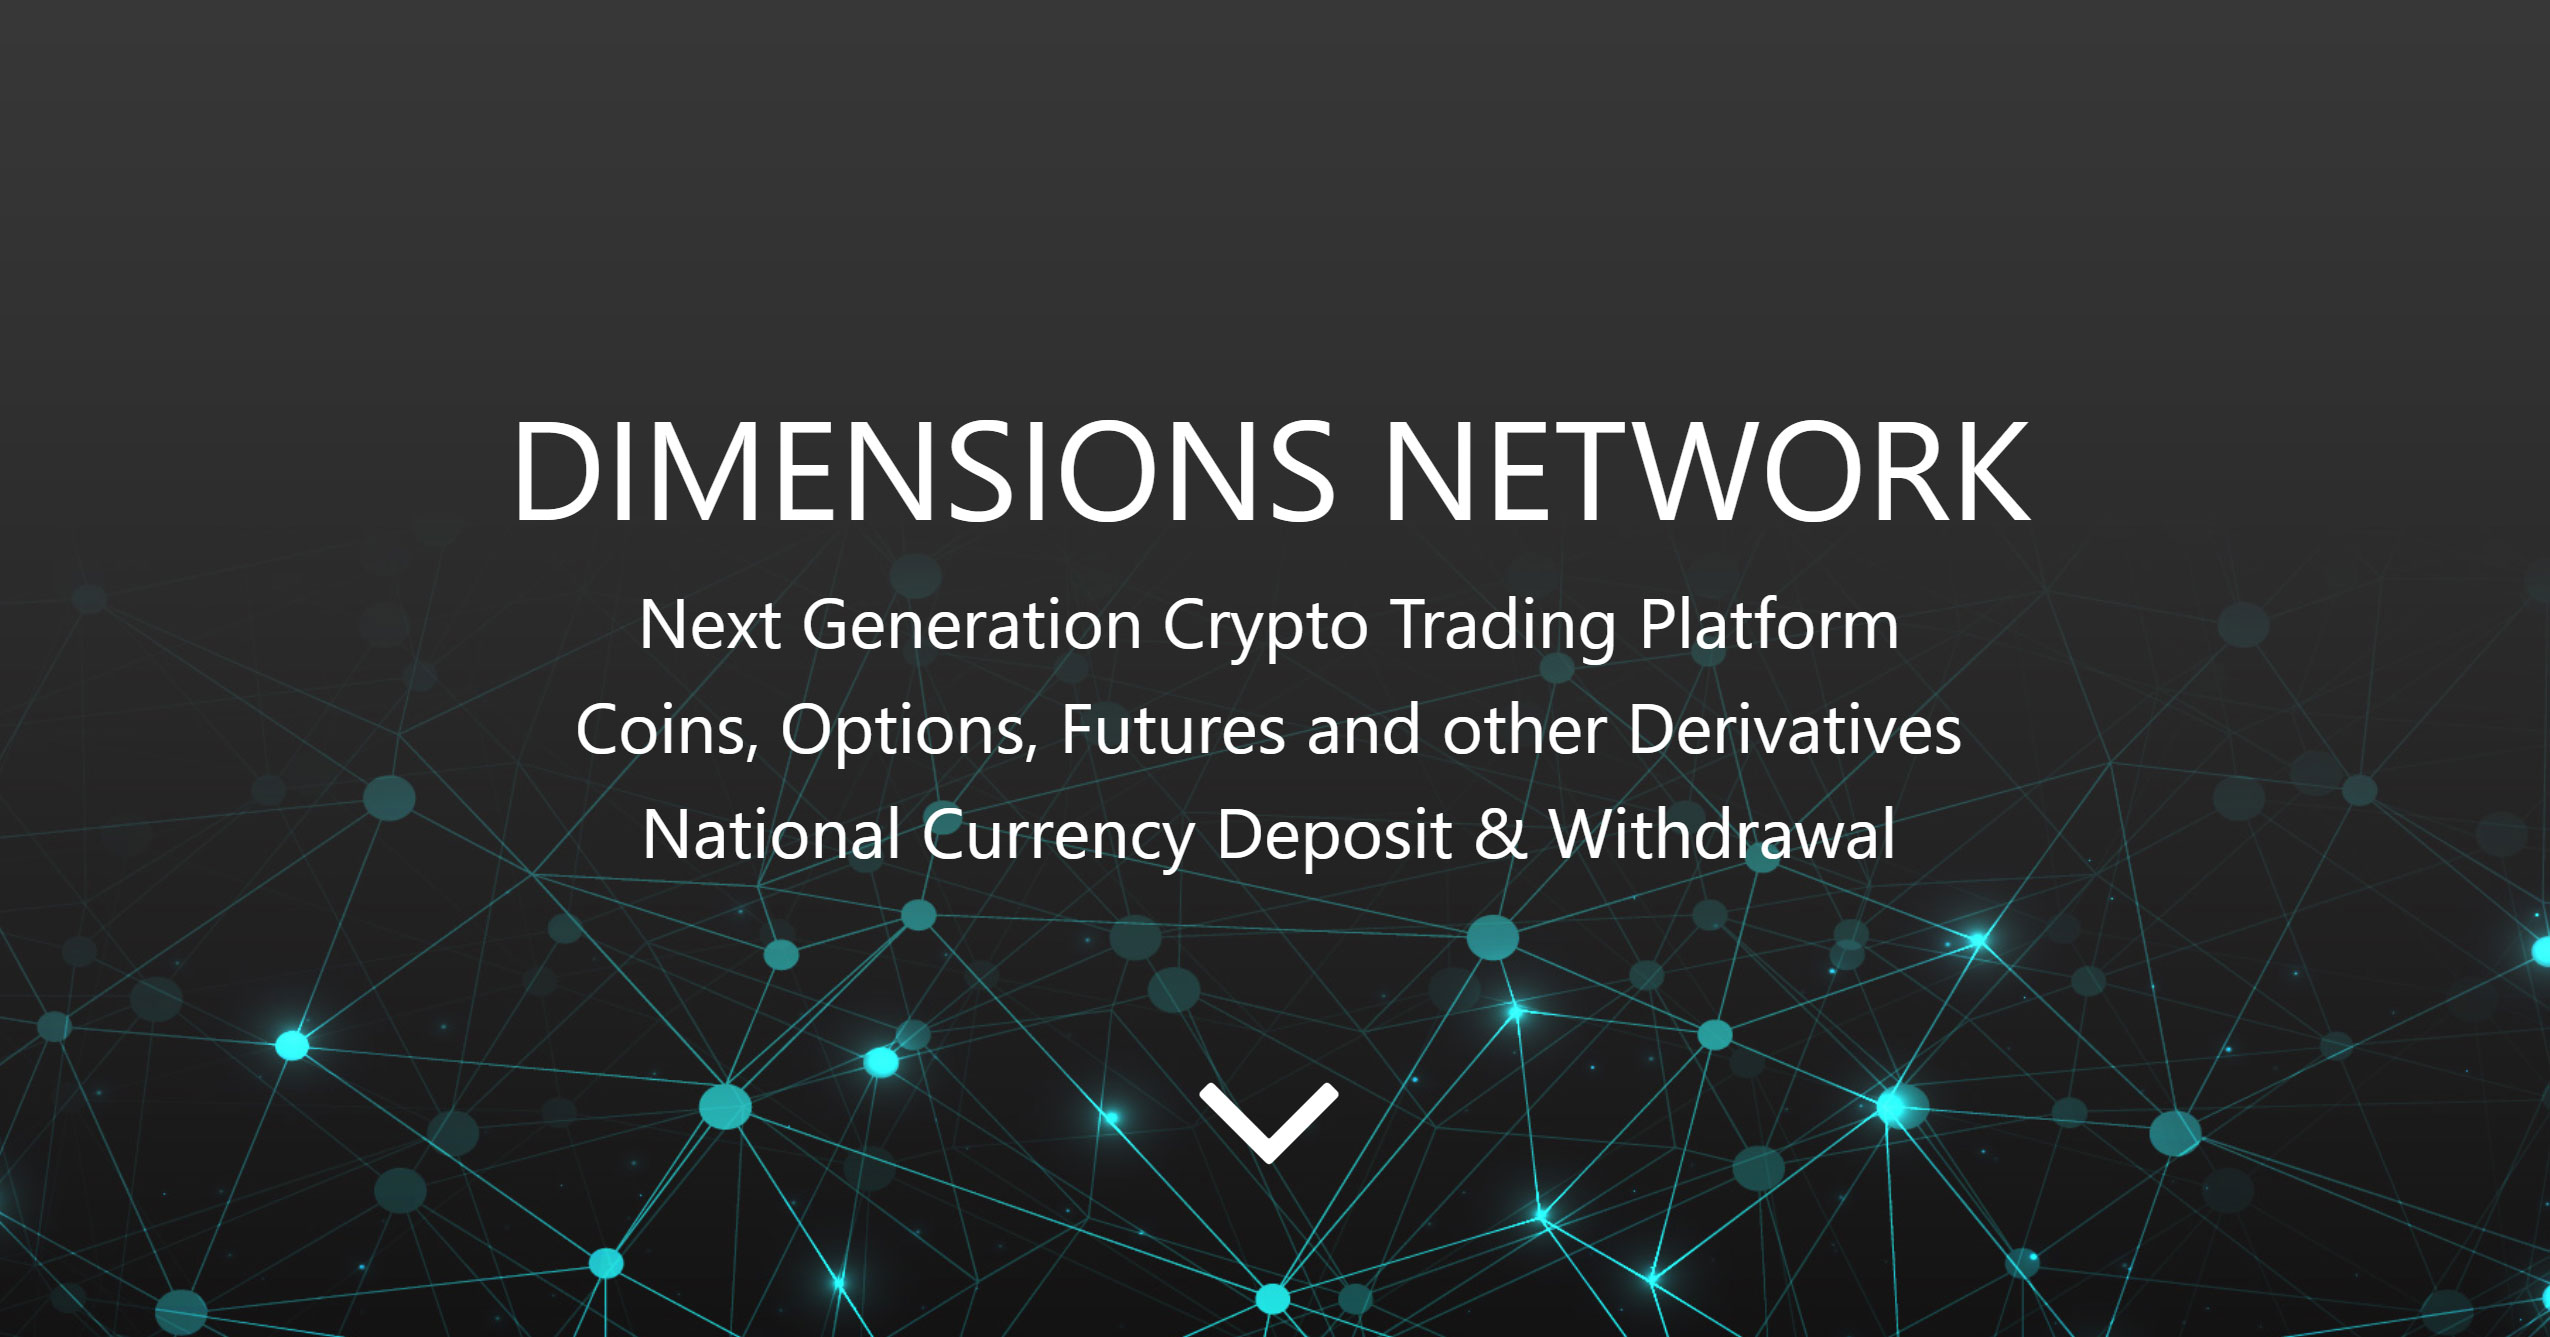 Image results for bounty dimensions